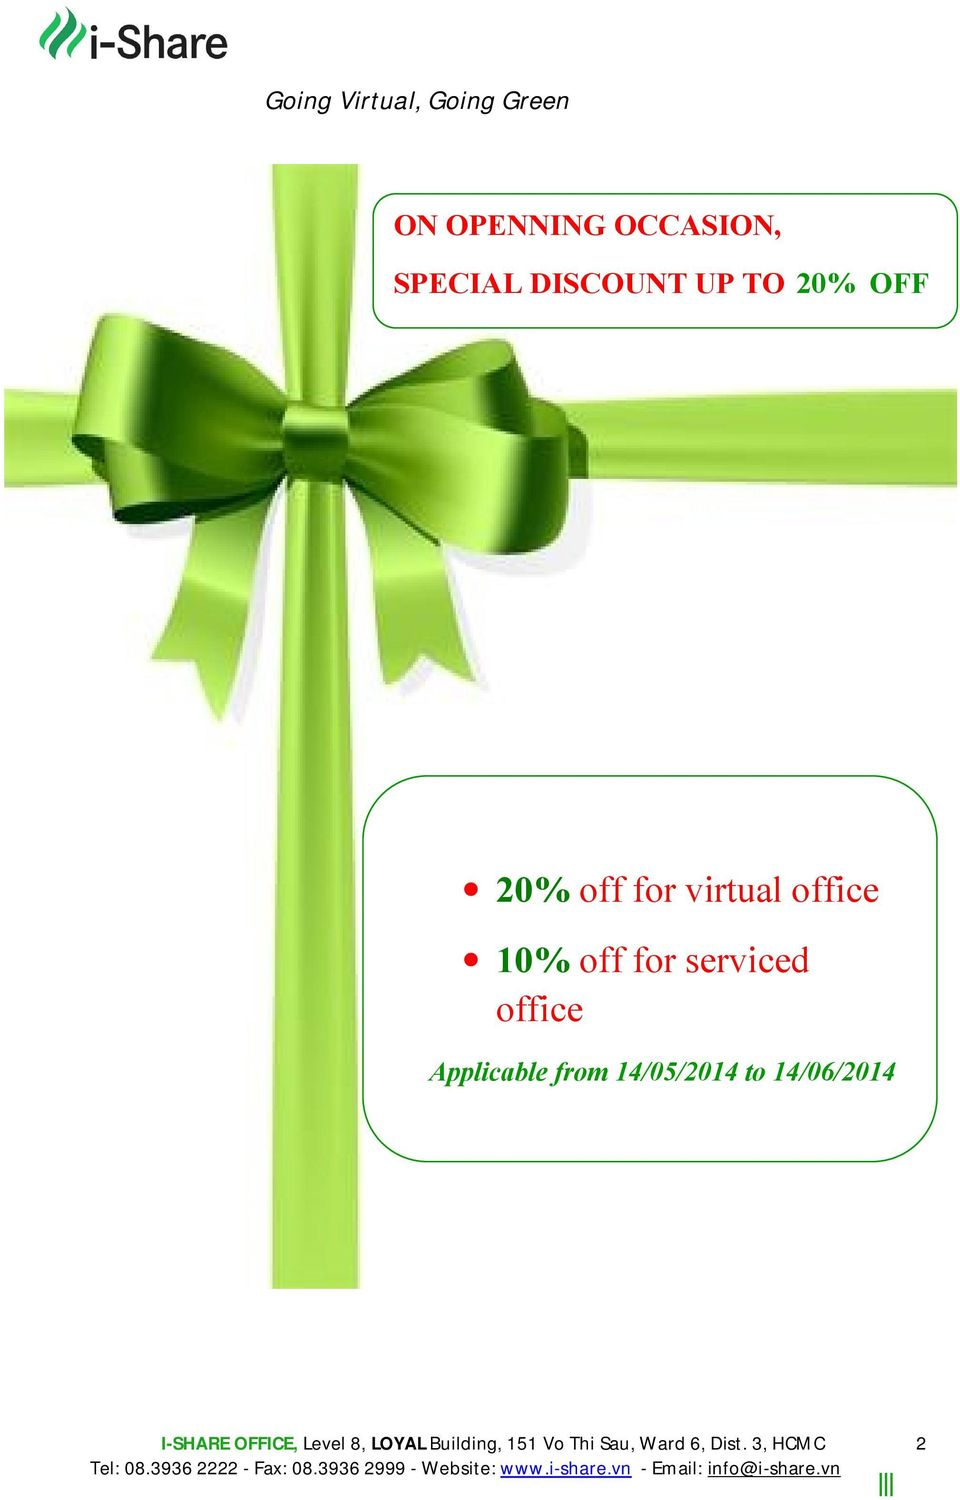 virtual office 10% off for serviced